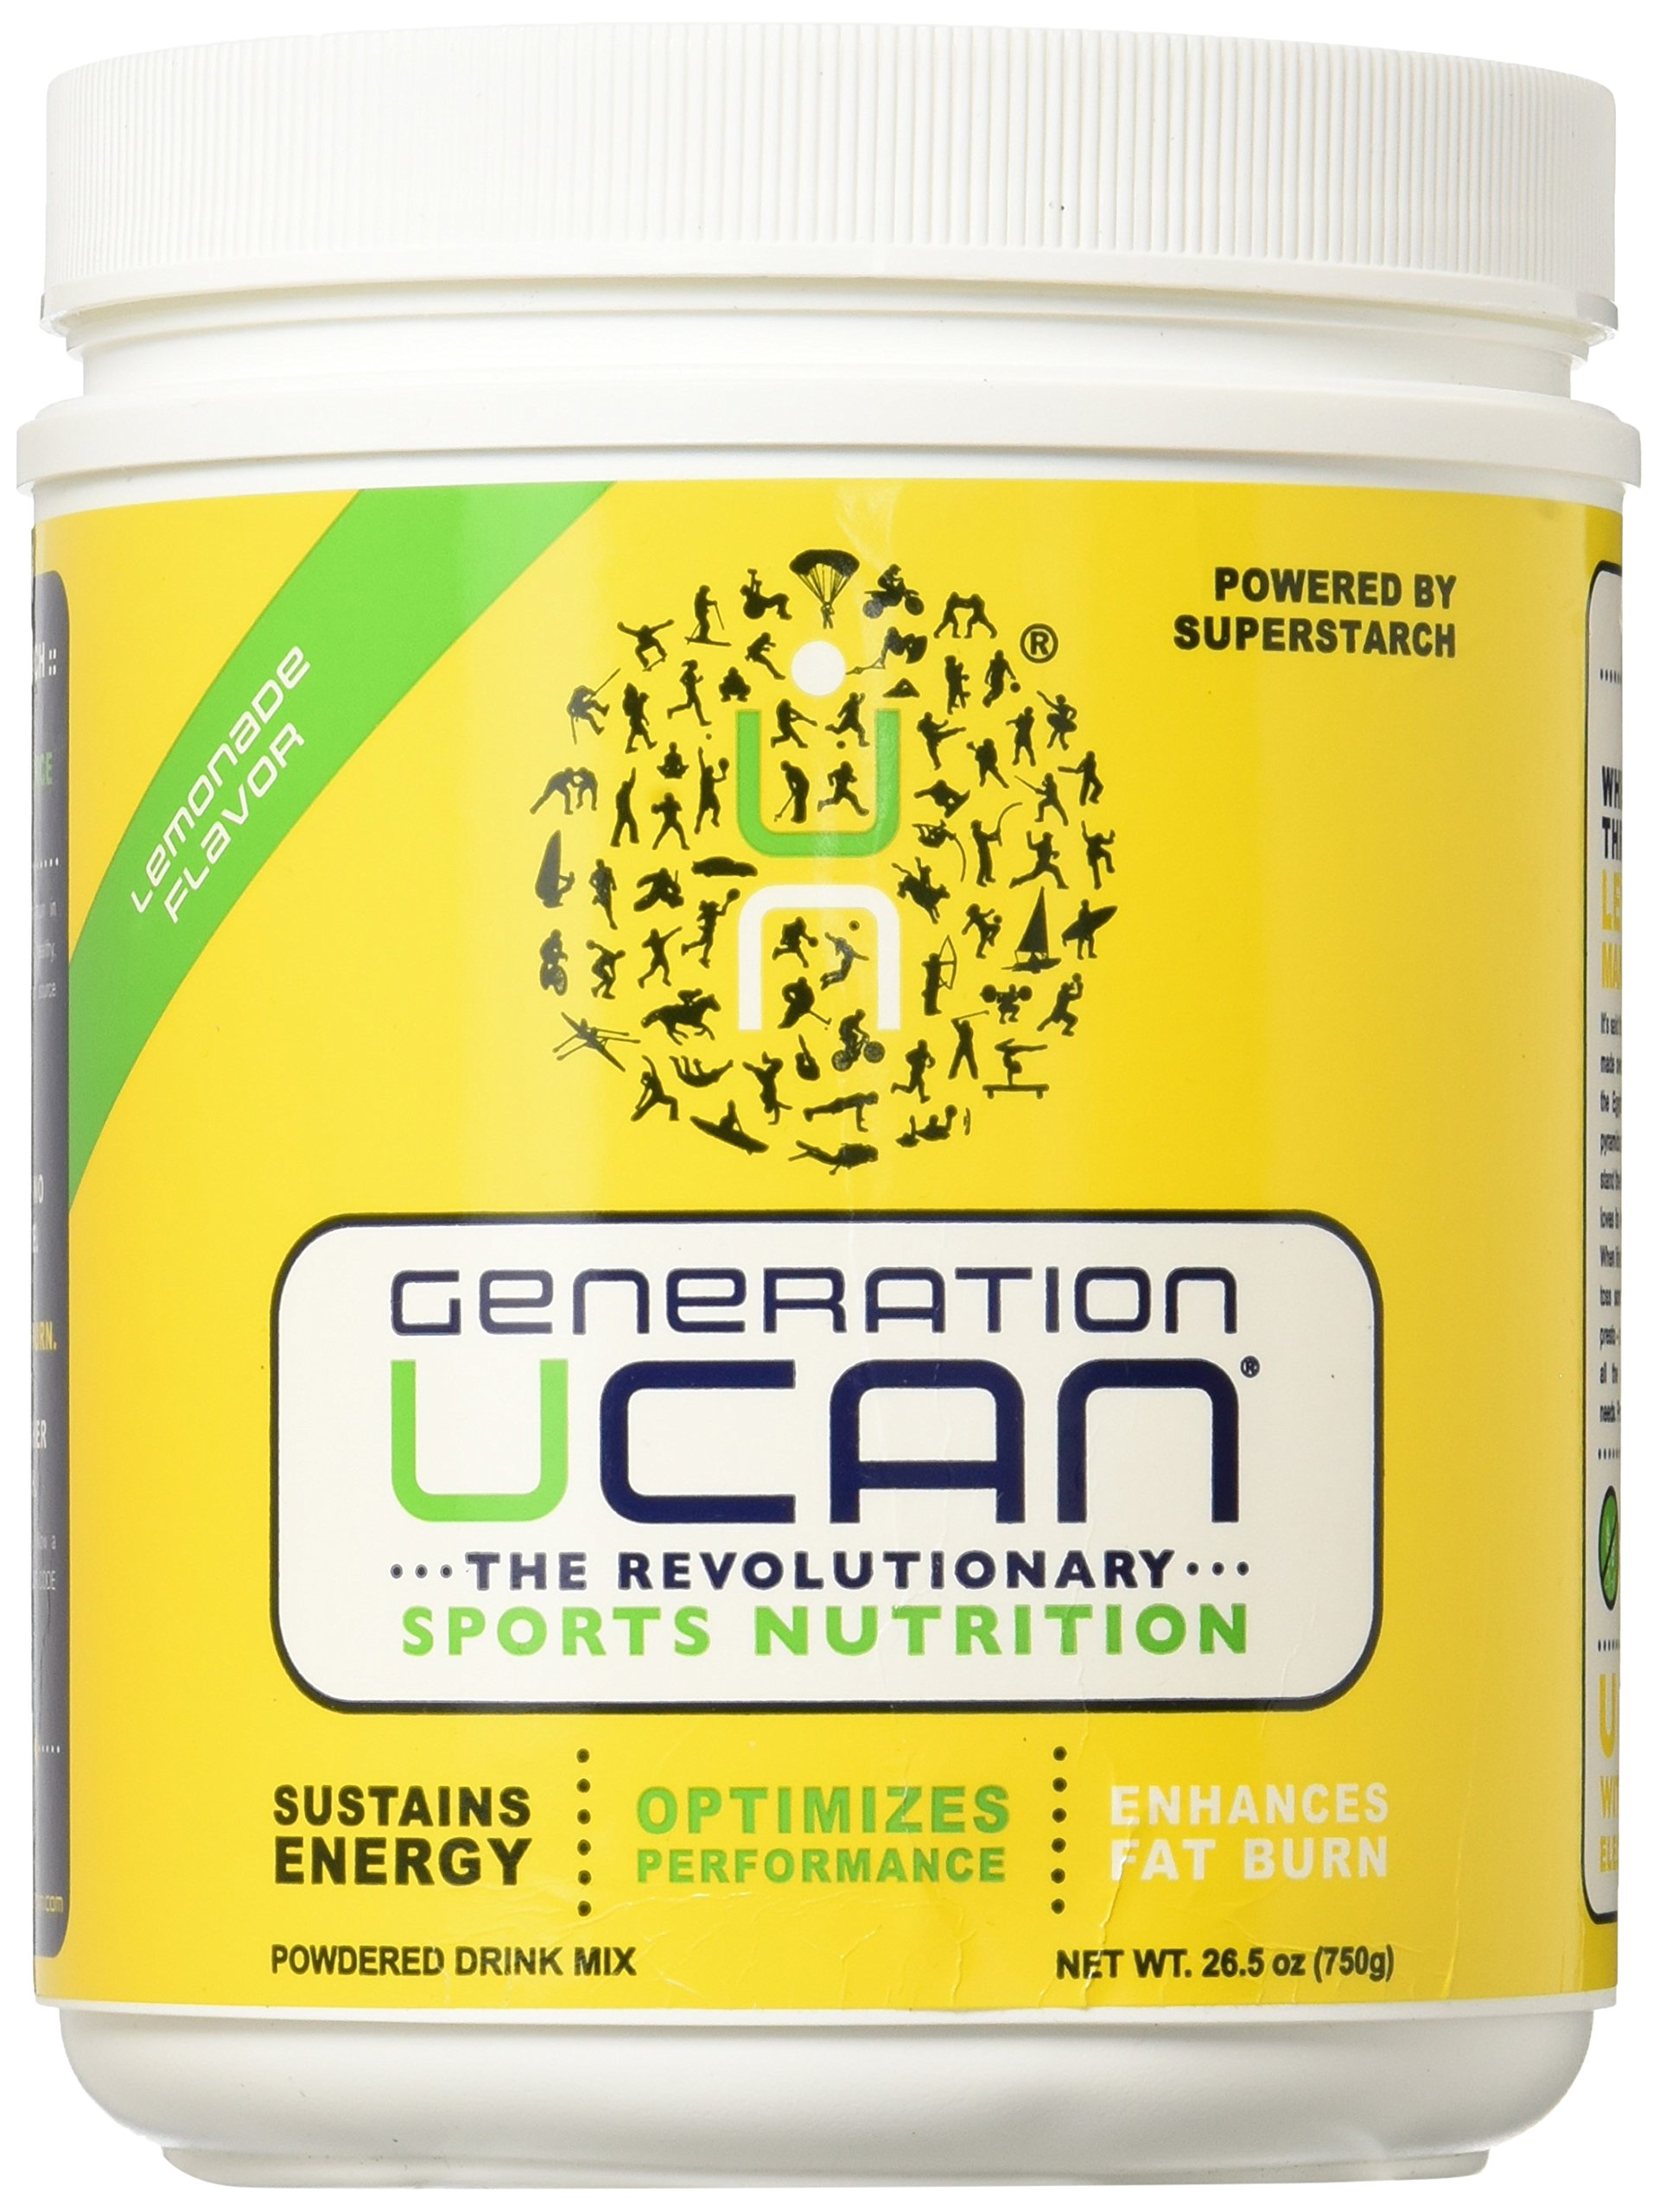 Generation UCAN SuperStarch Energy Drink Mix Tub, Lemonade, No Added Sugar, Gluten-Free, Vegan, 26.5 Ounces, 30 Servings